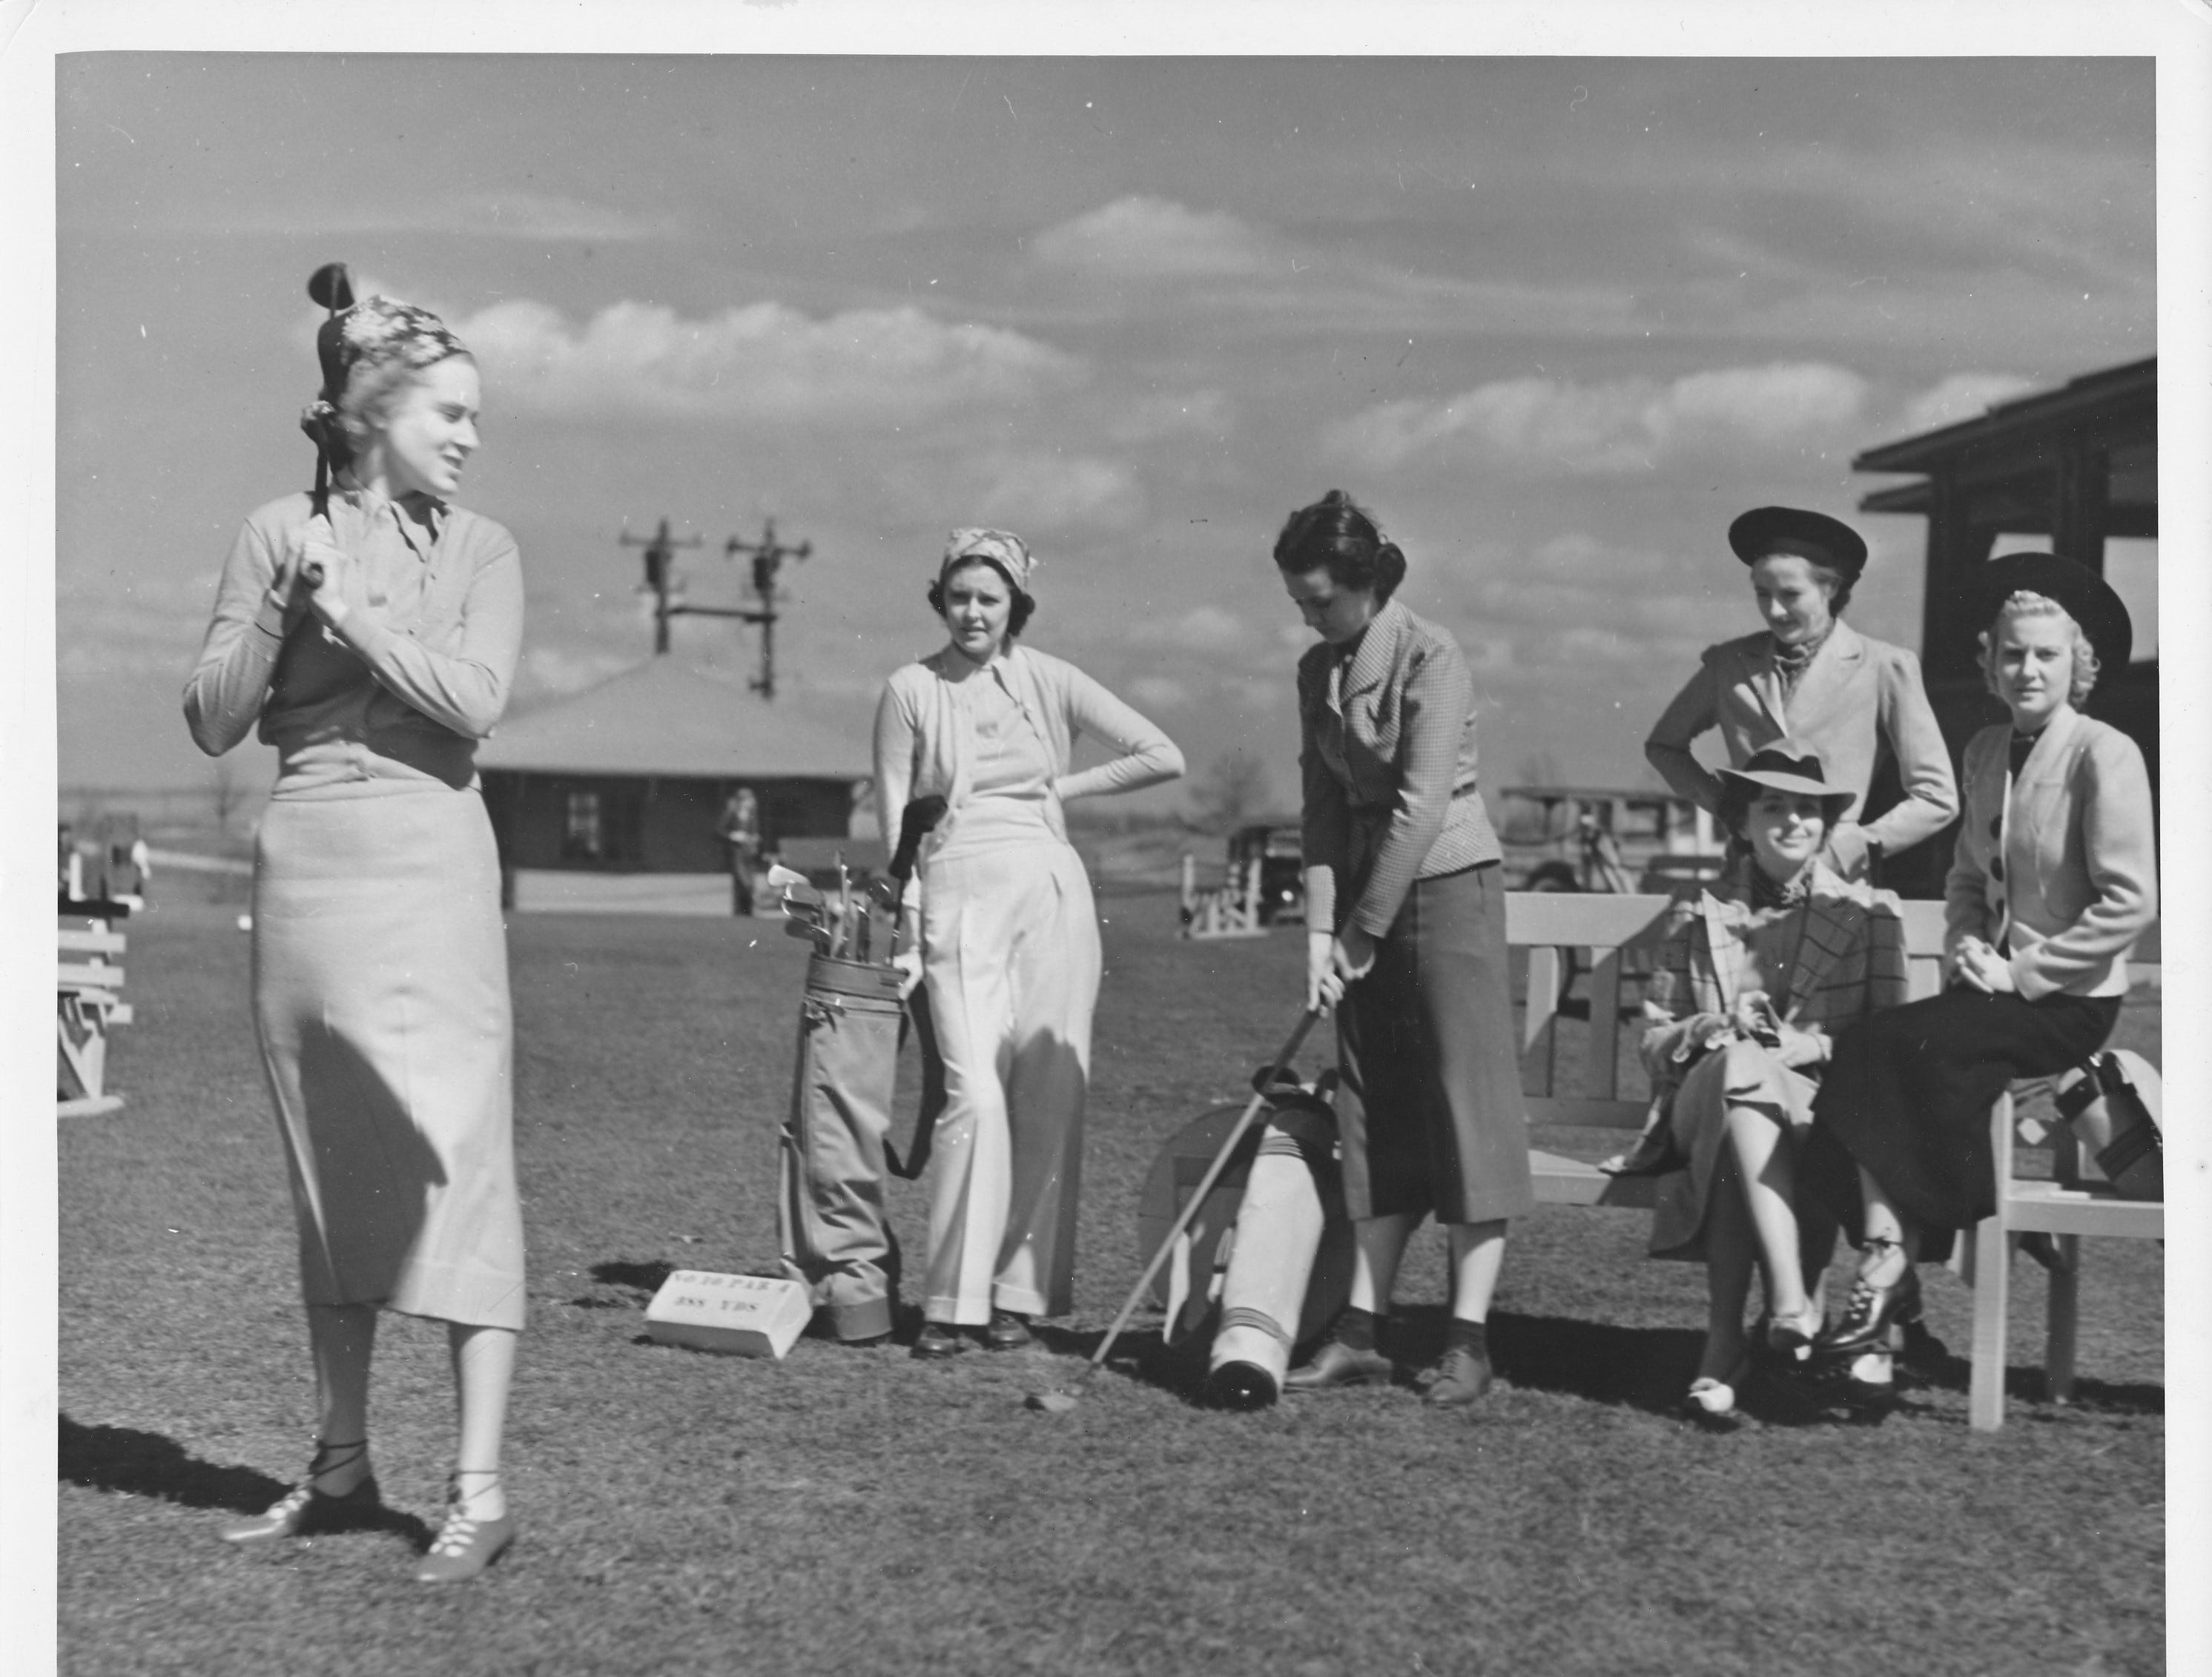 Female golfers hit the links in the 1940s at French Lick Springs Hotel